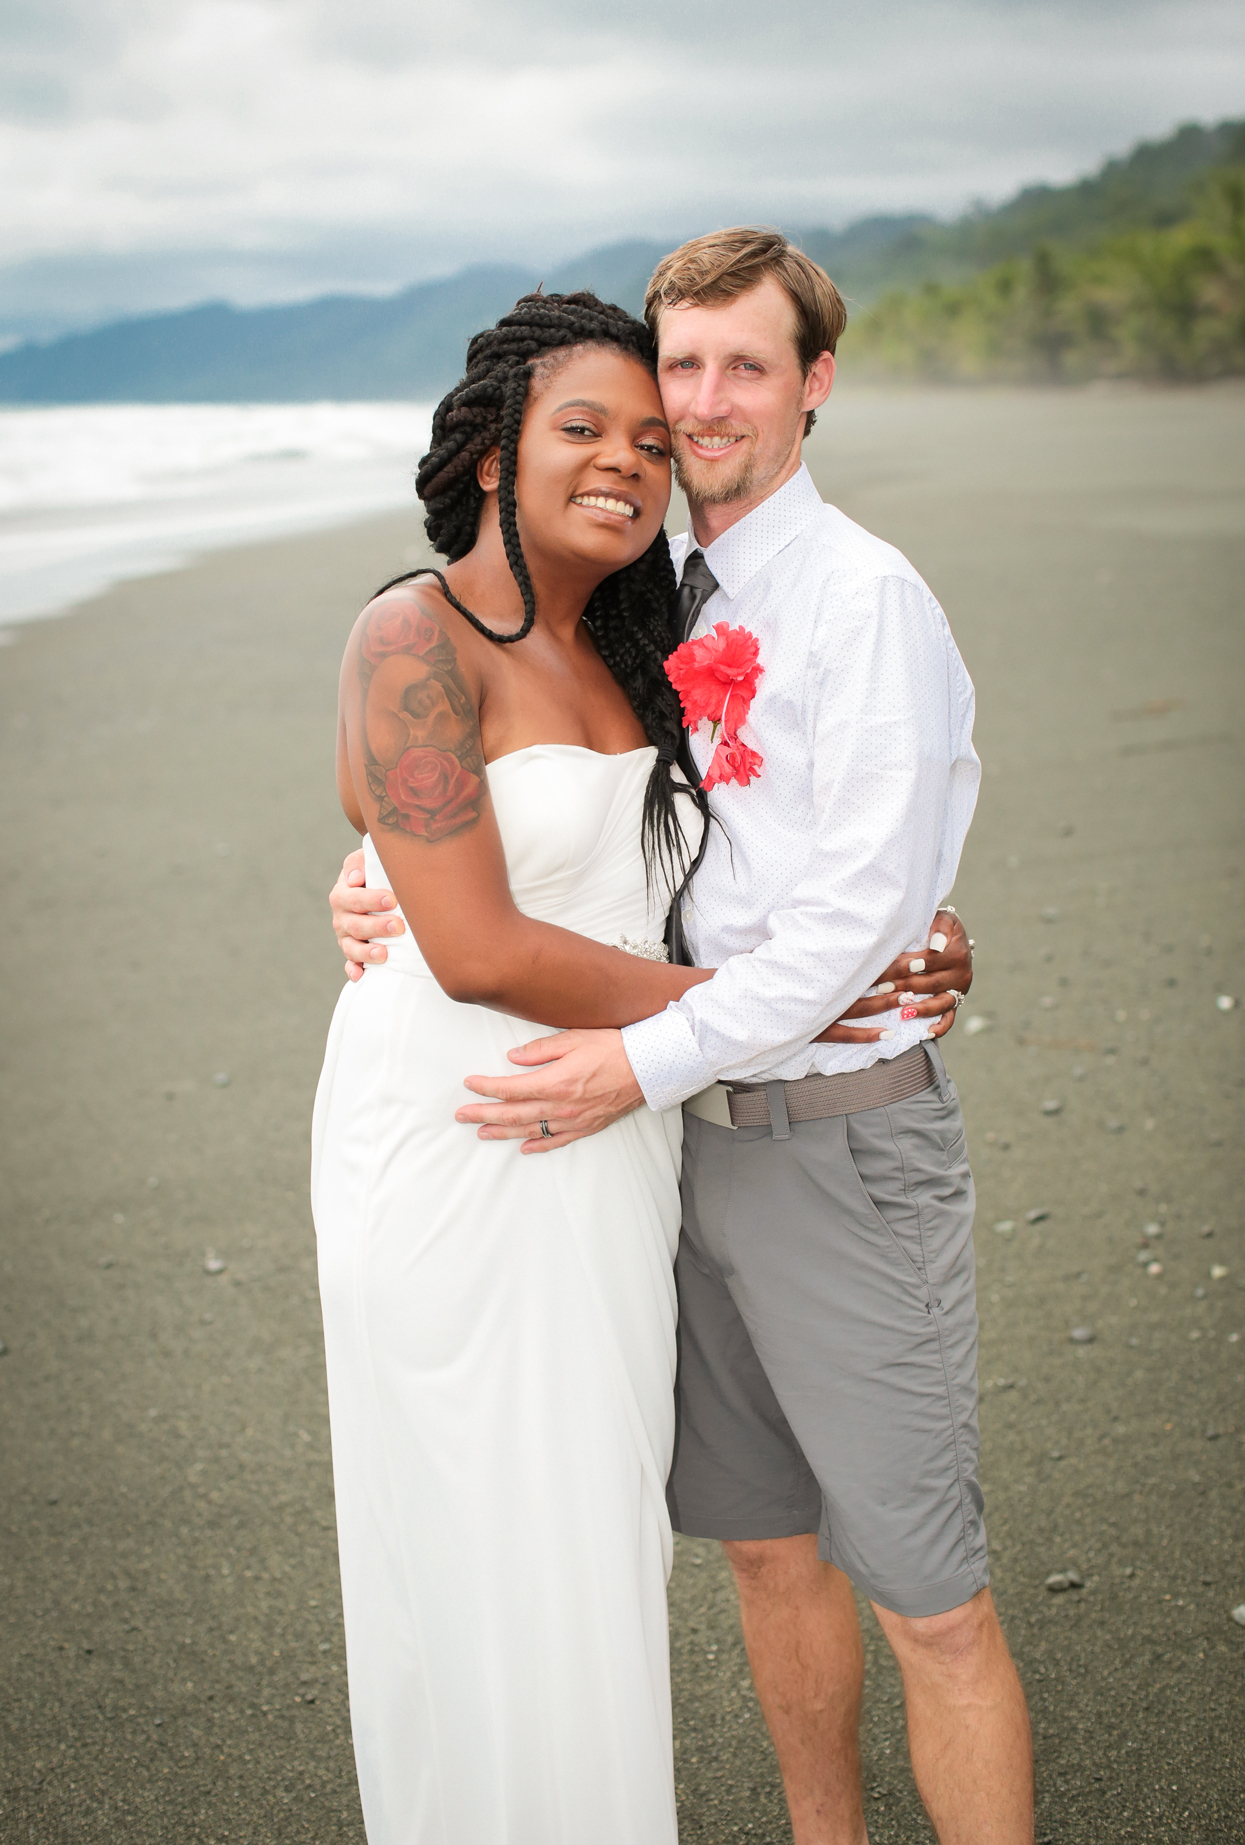 Sherri and Jorie Costa Rica Beach Wedding #2